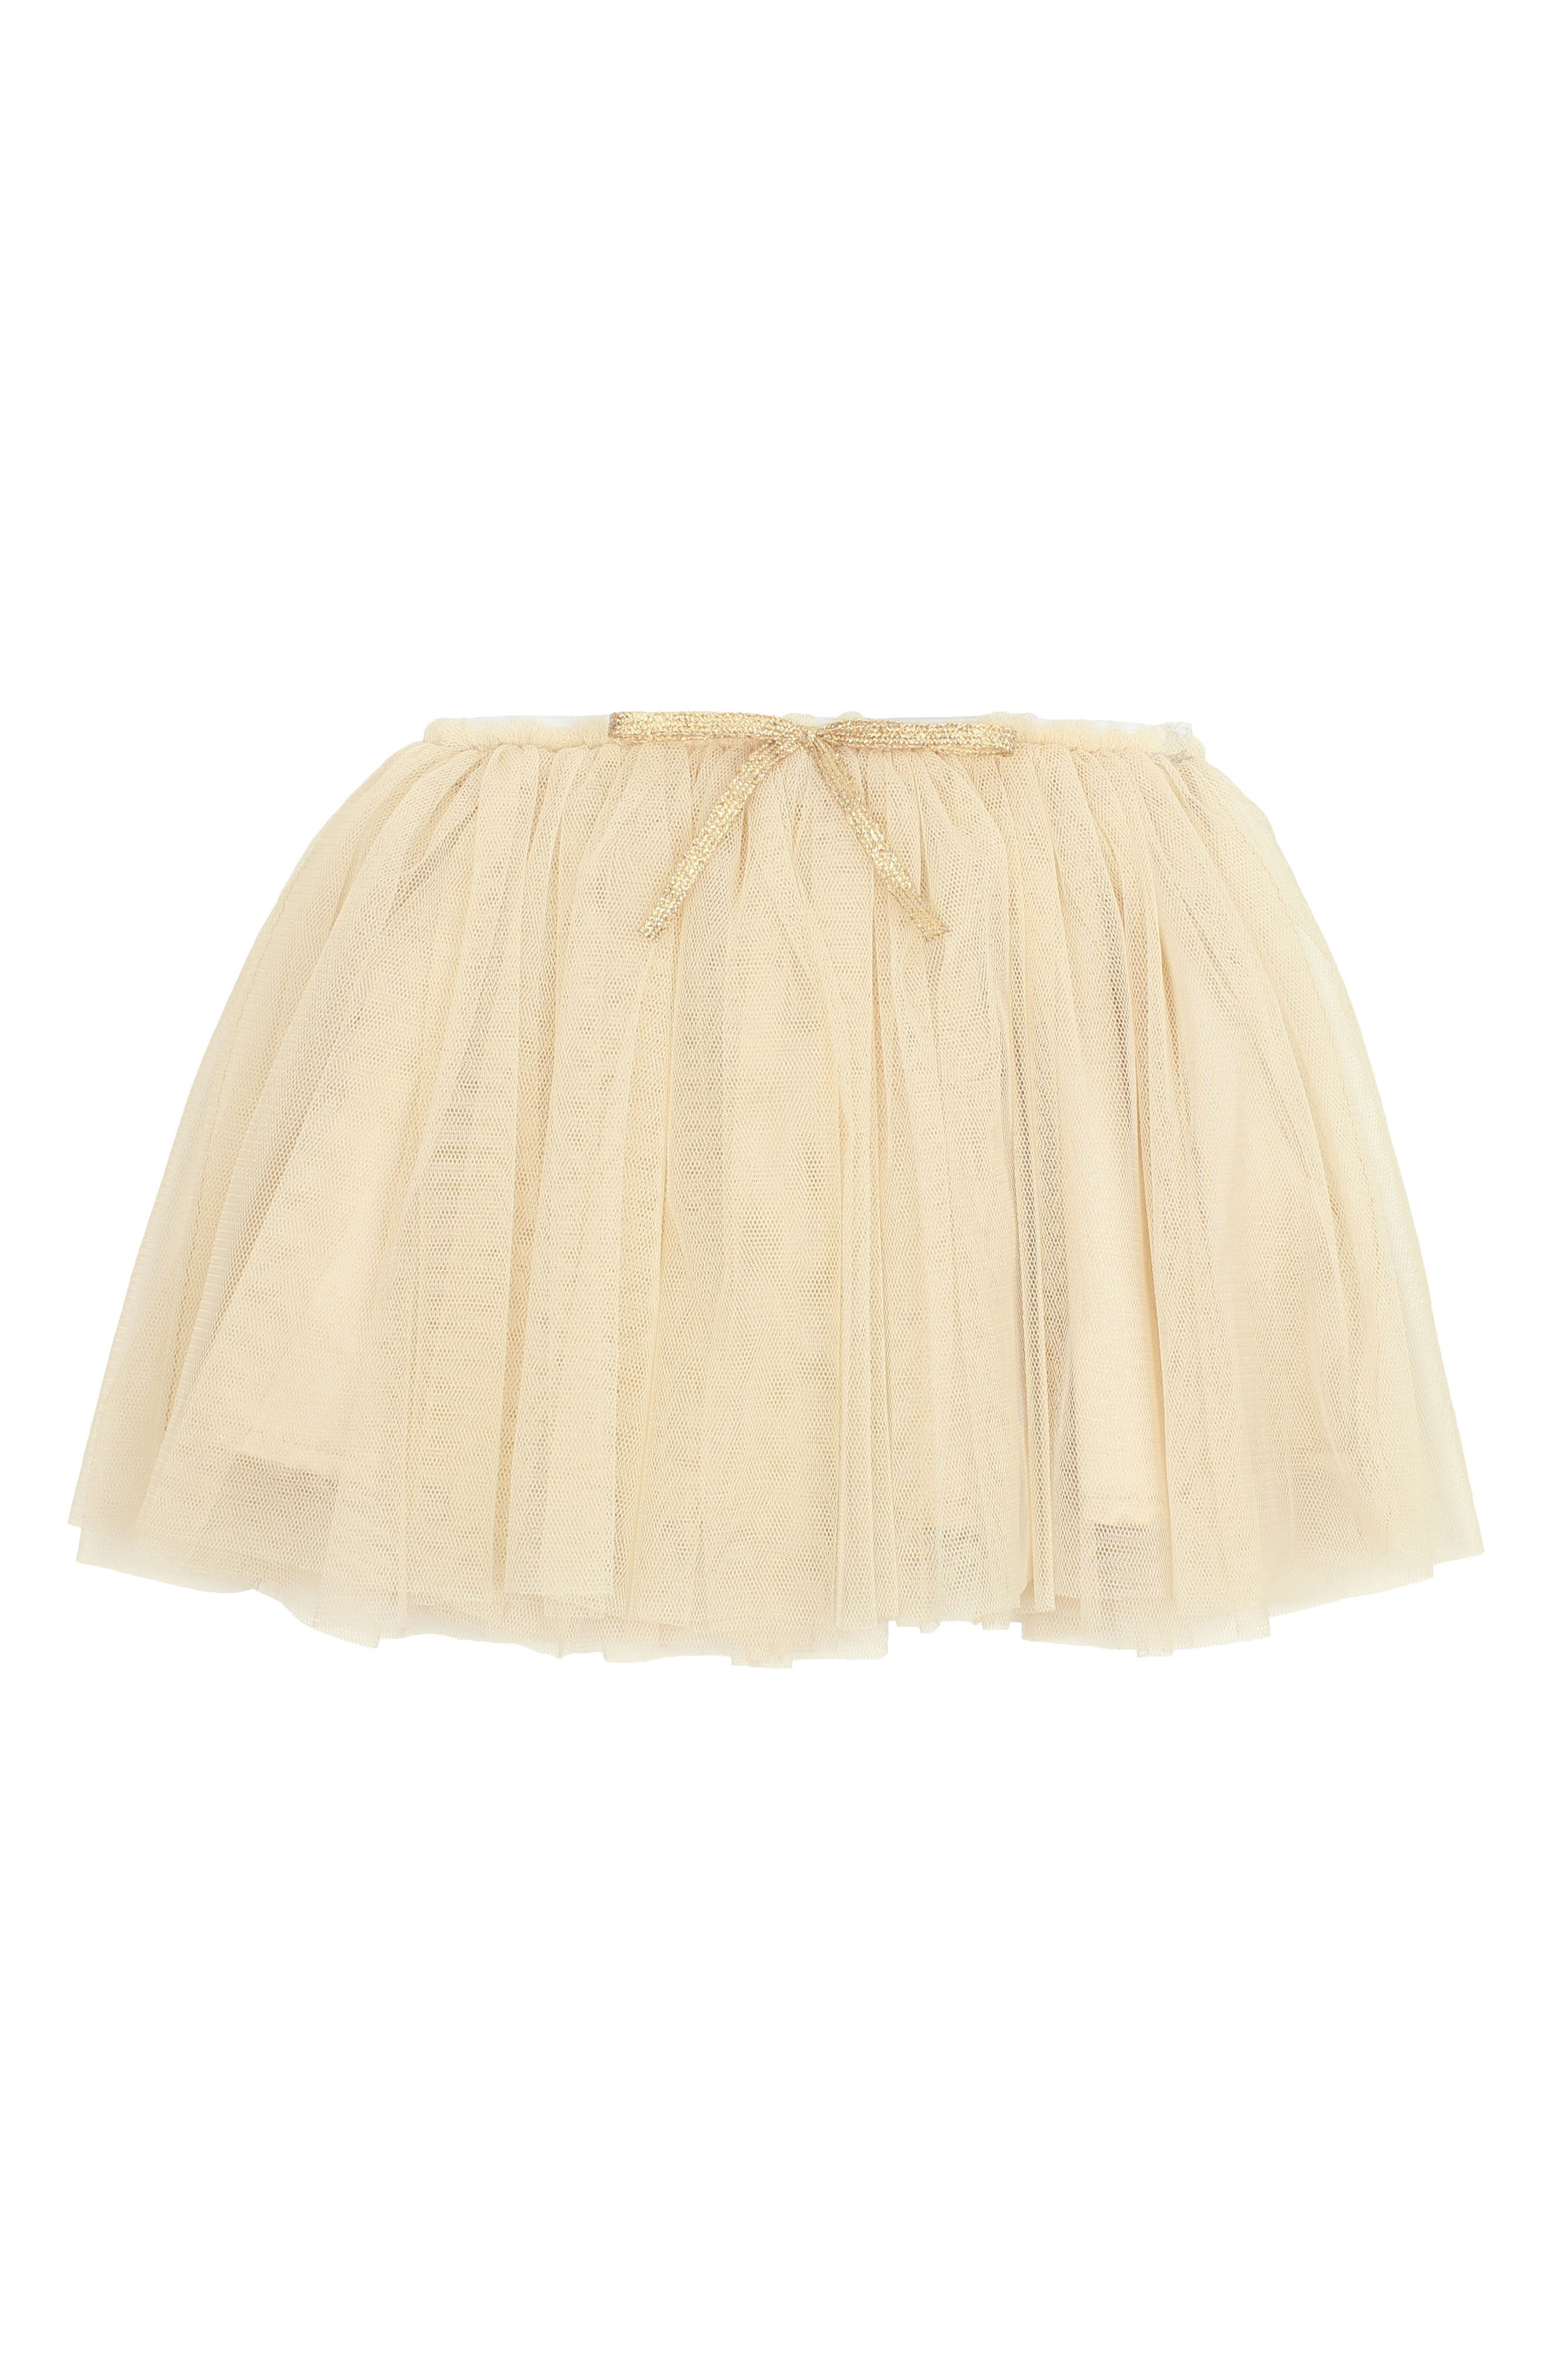 Alternate Image 1 Selected - Popatu Tutu Skirt (Baby Girls)